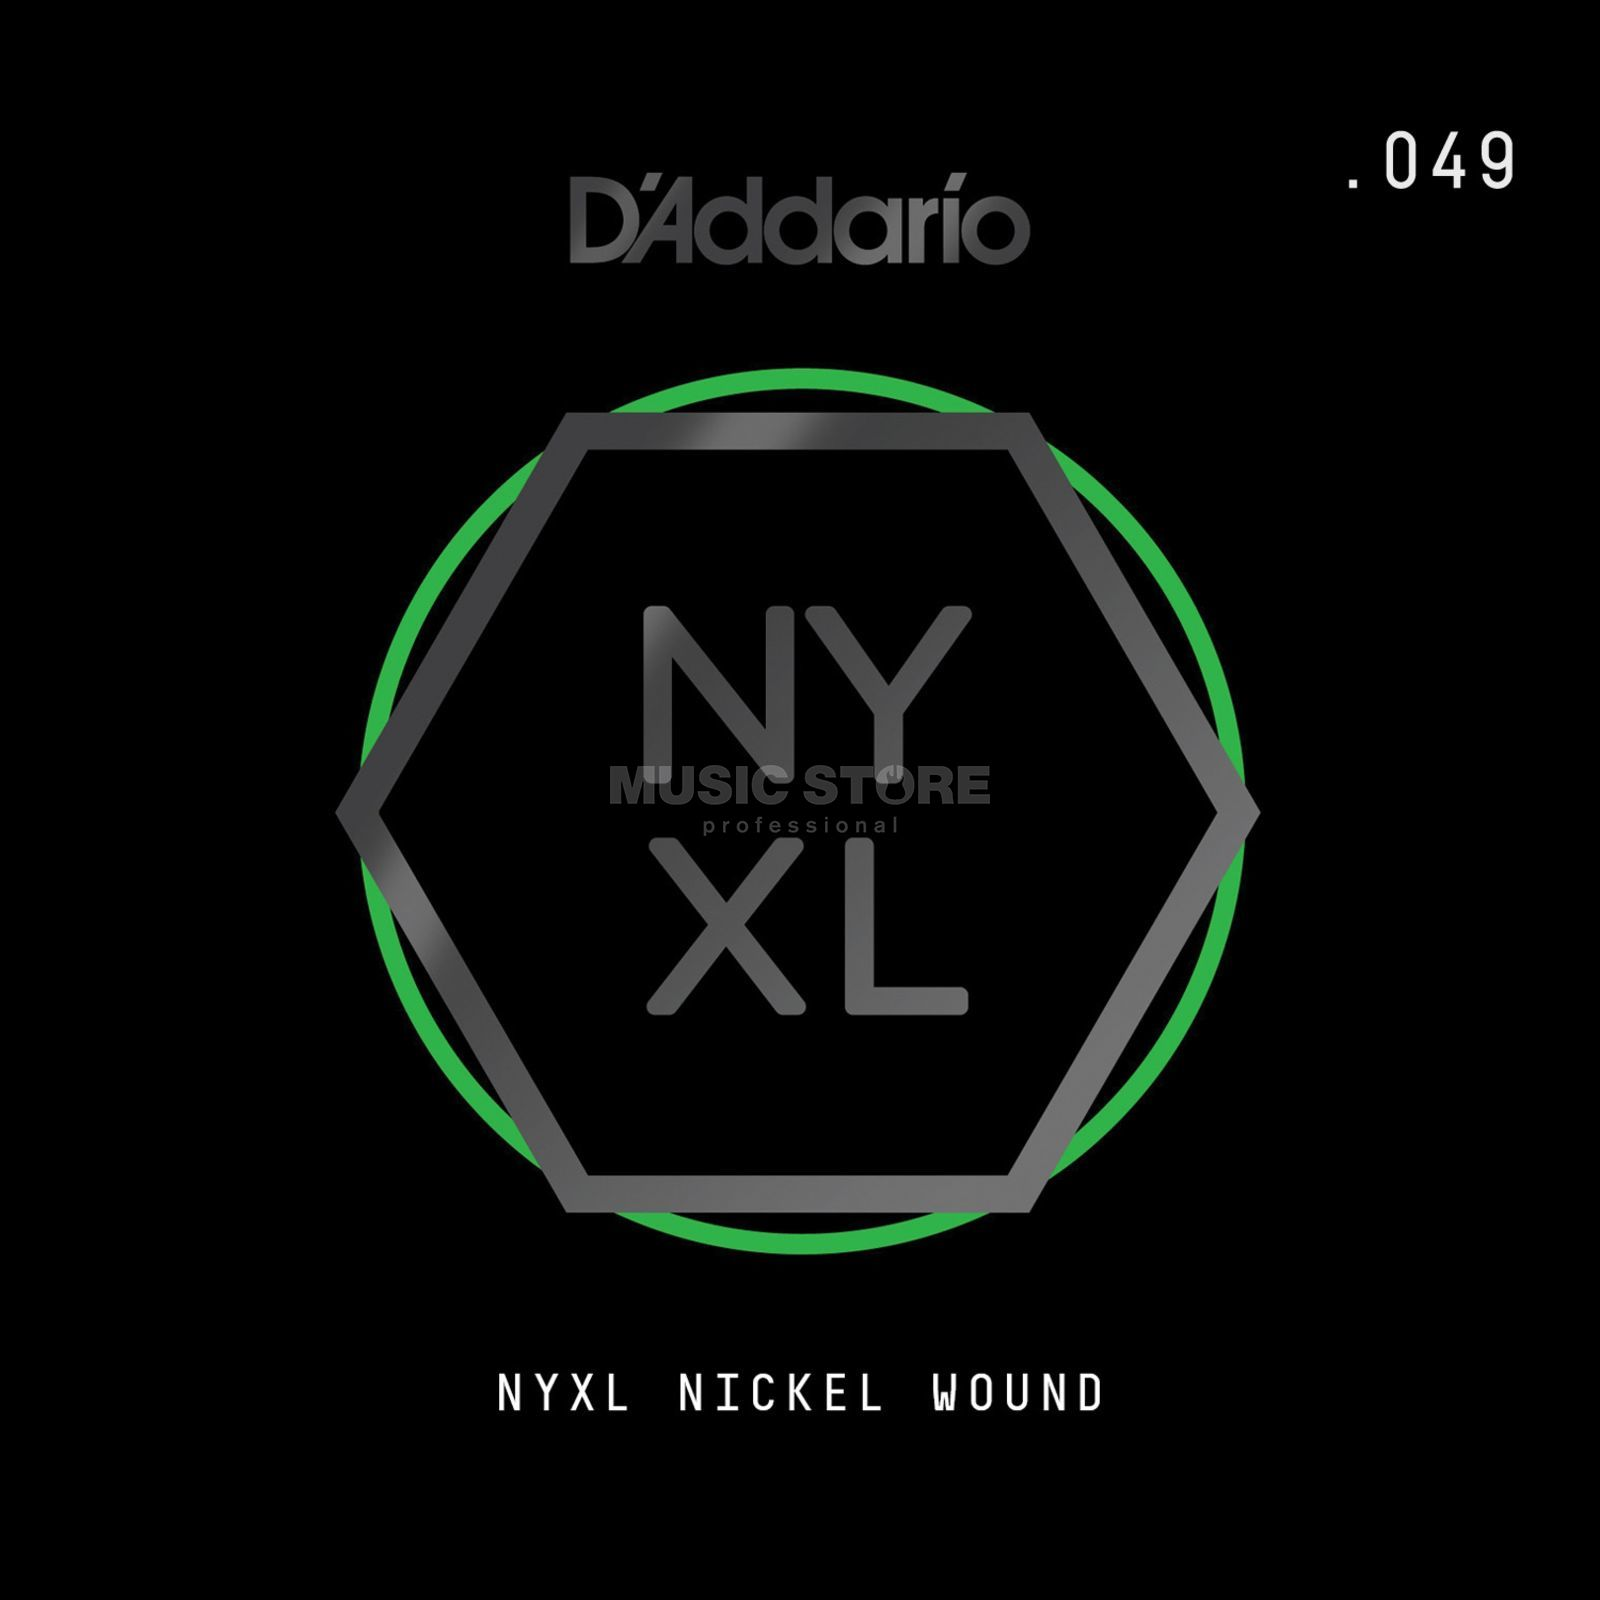 D'Addario NYNW049 Single String Nickel Wound Zdjęcie produktu